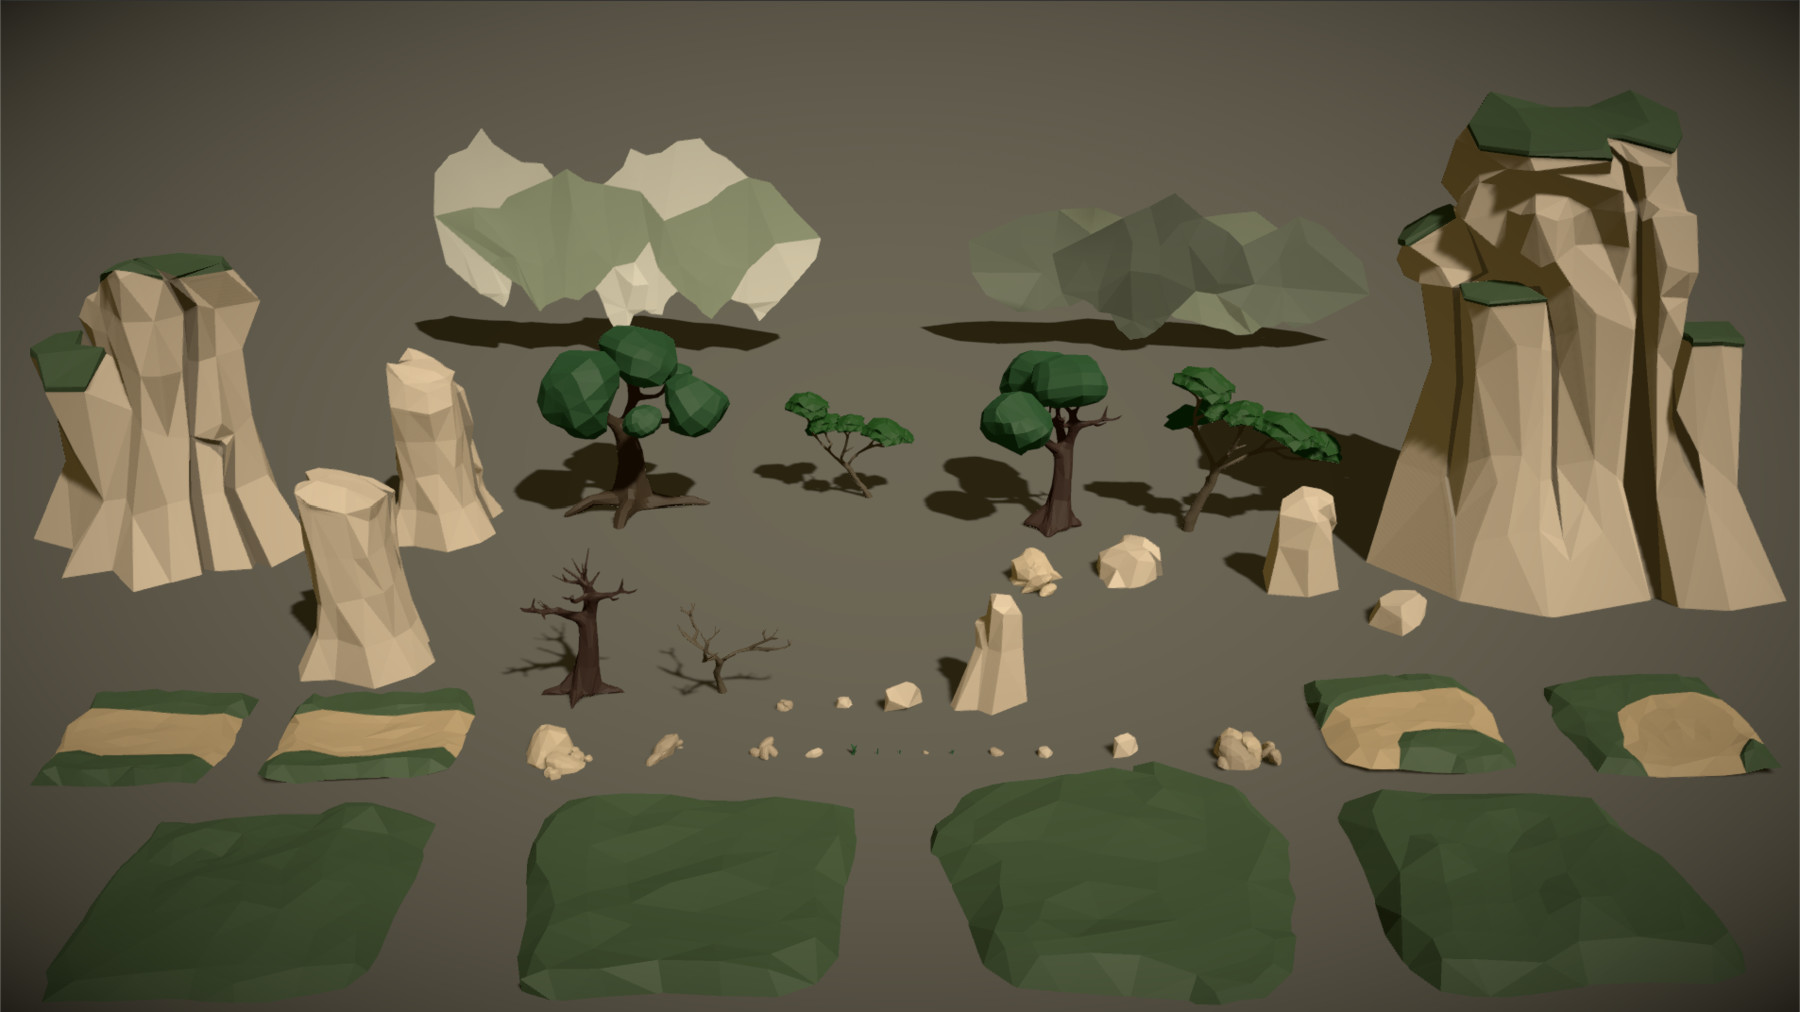 Pt medieval lowpoly characters environment